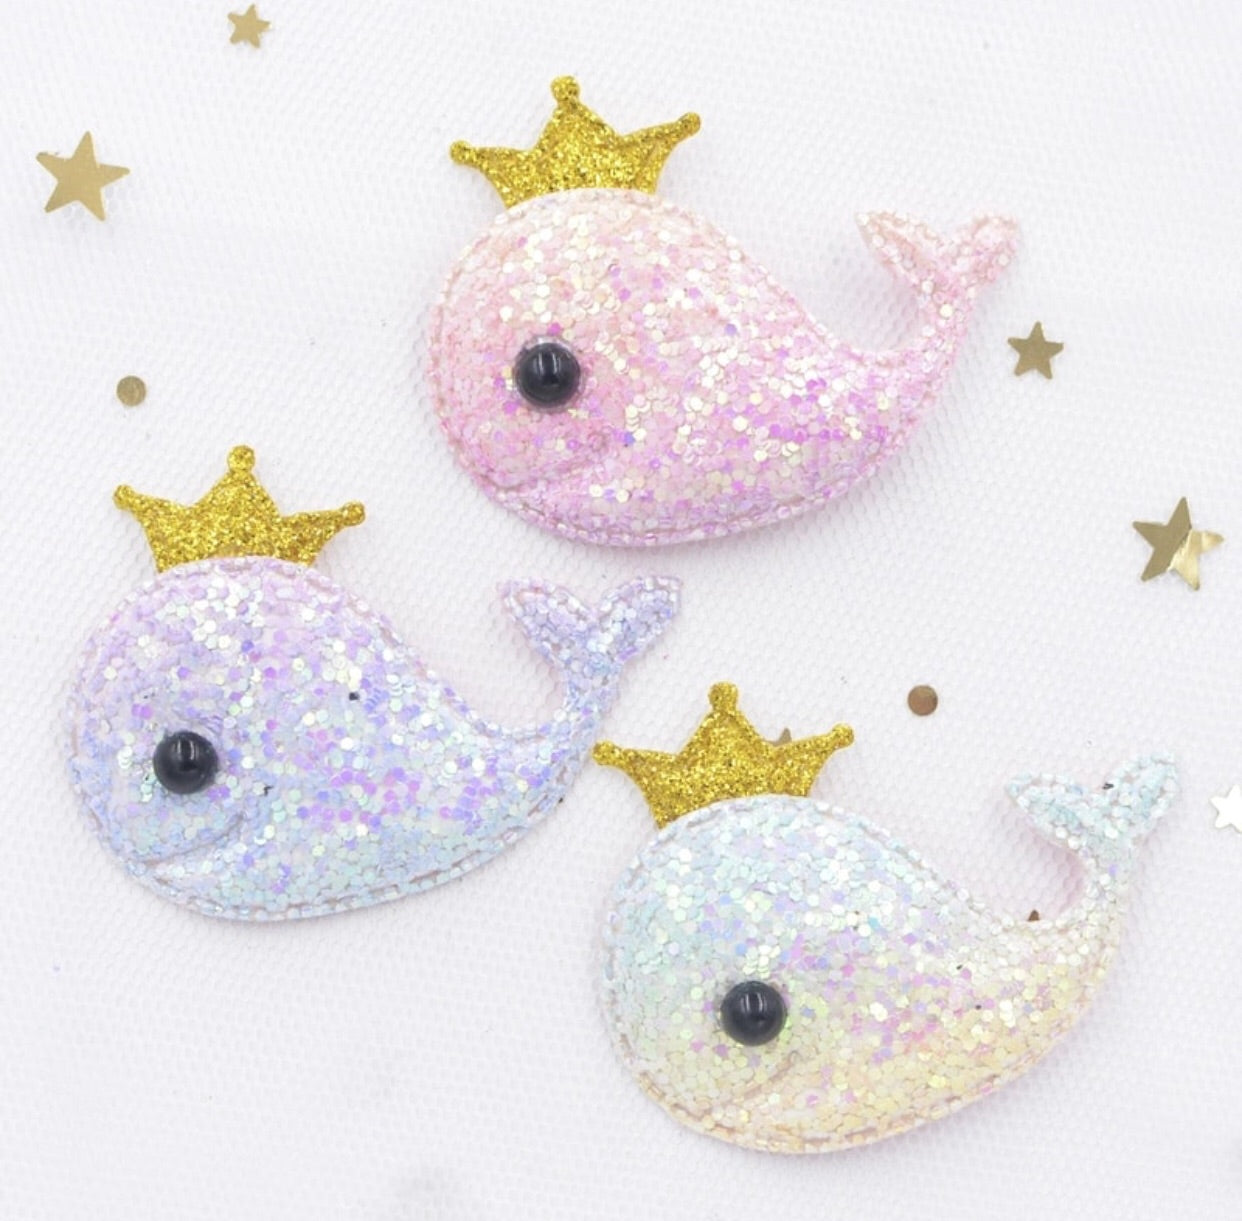 Padded Whale Appliqué - Chunky Glitter Ombre Gold Crown